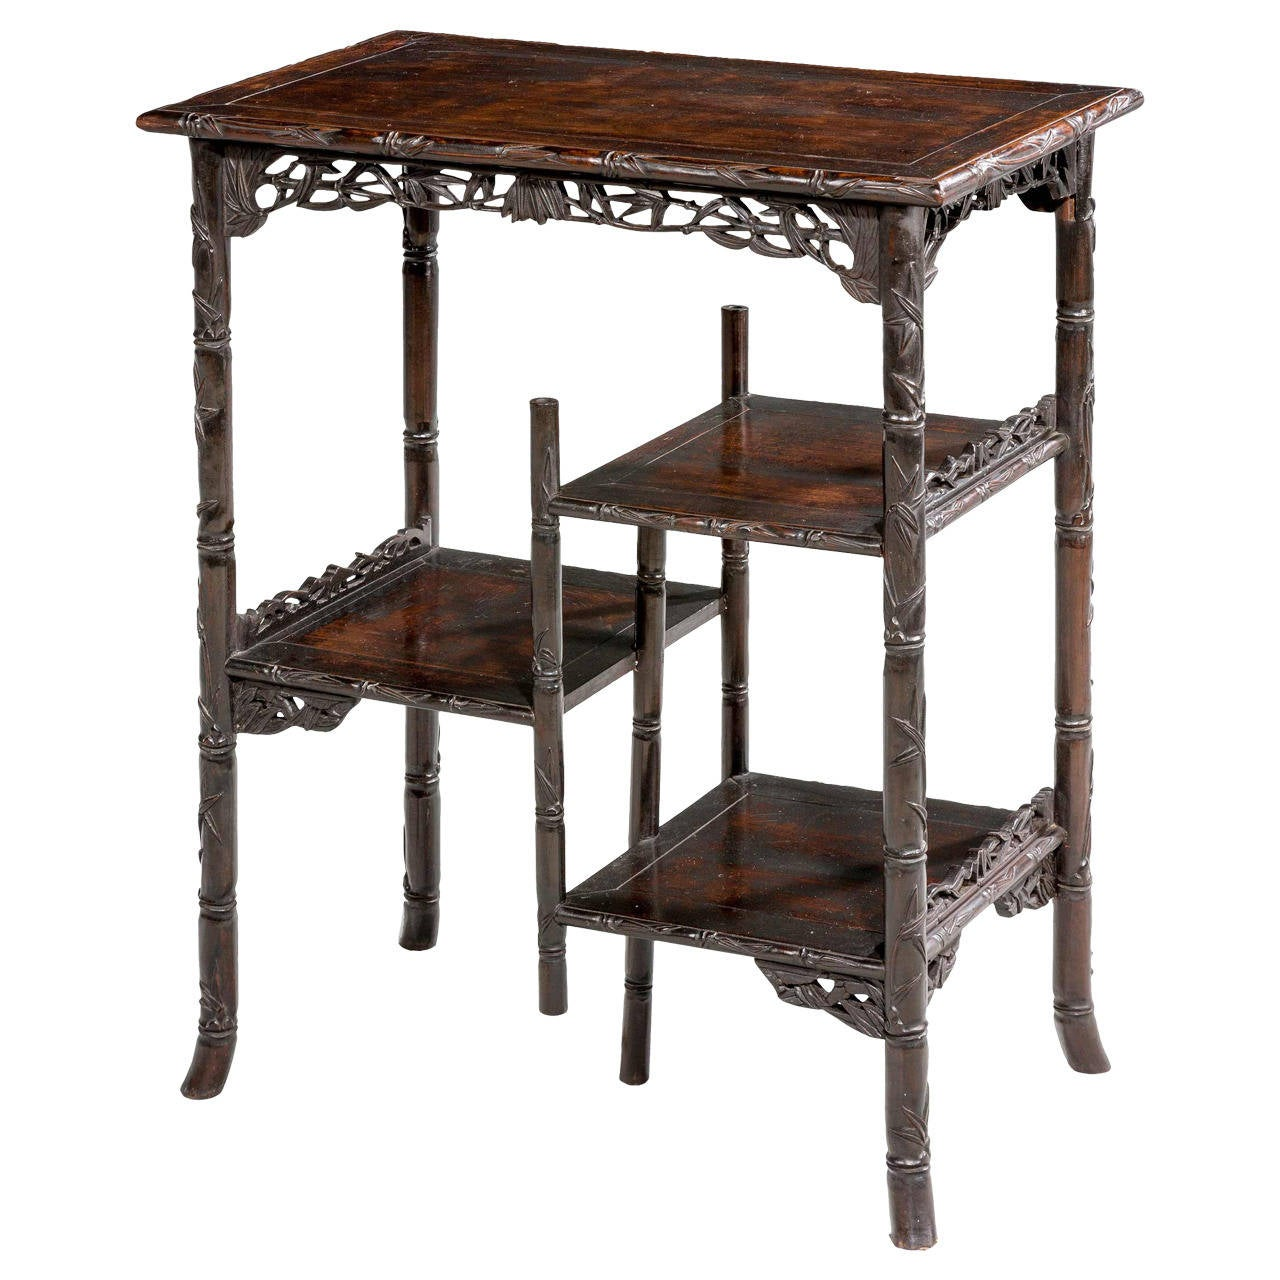 19th century exceptionally fine oriental etagere at 1stdibs. Black Bedroom Furniture Sets. Home Design Ideas